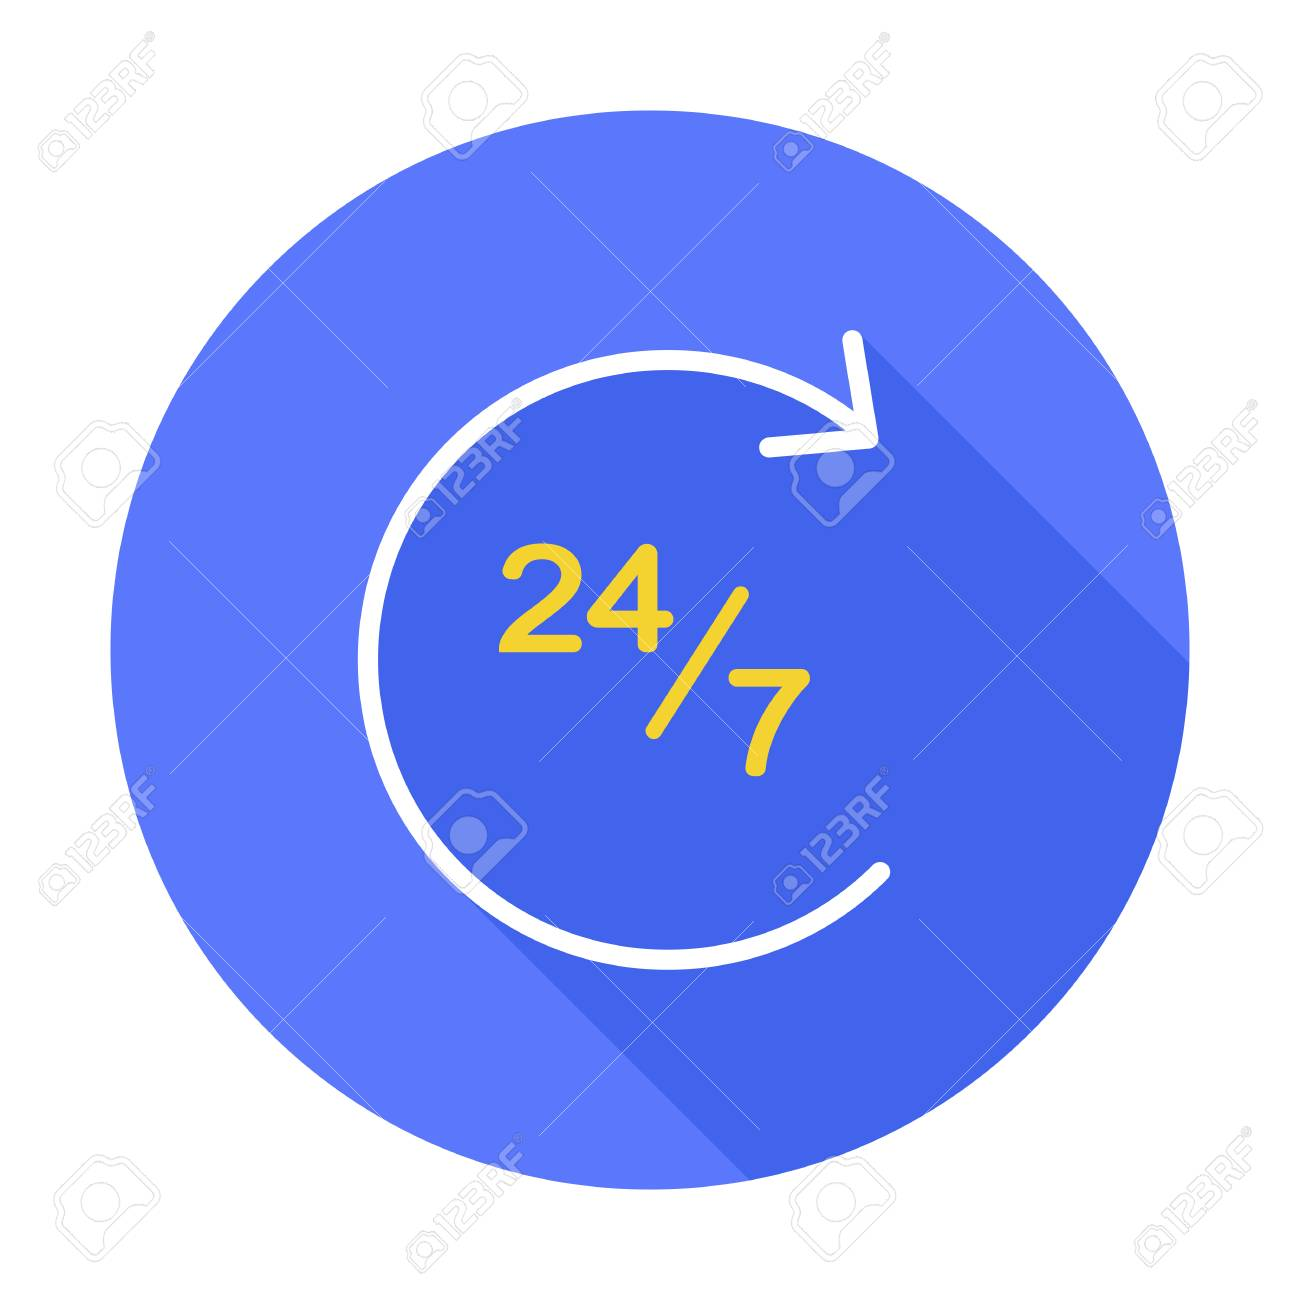 24 7 icon vector isolated illustration. Shop Open 24 hours 7 day. Full week. Clock, time, work concept. Support, assistance, service symbol. Business sign. Customer service. - 112464005